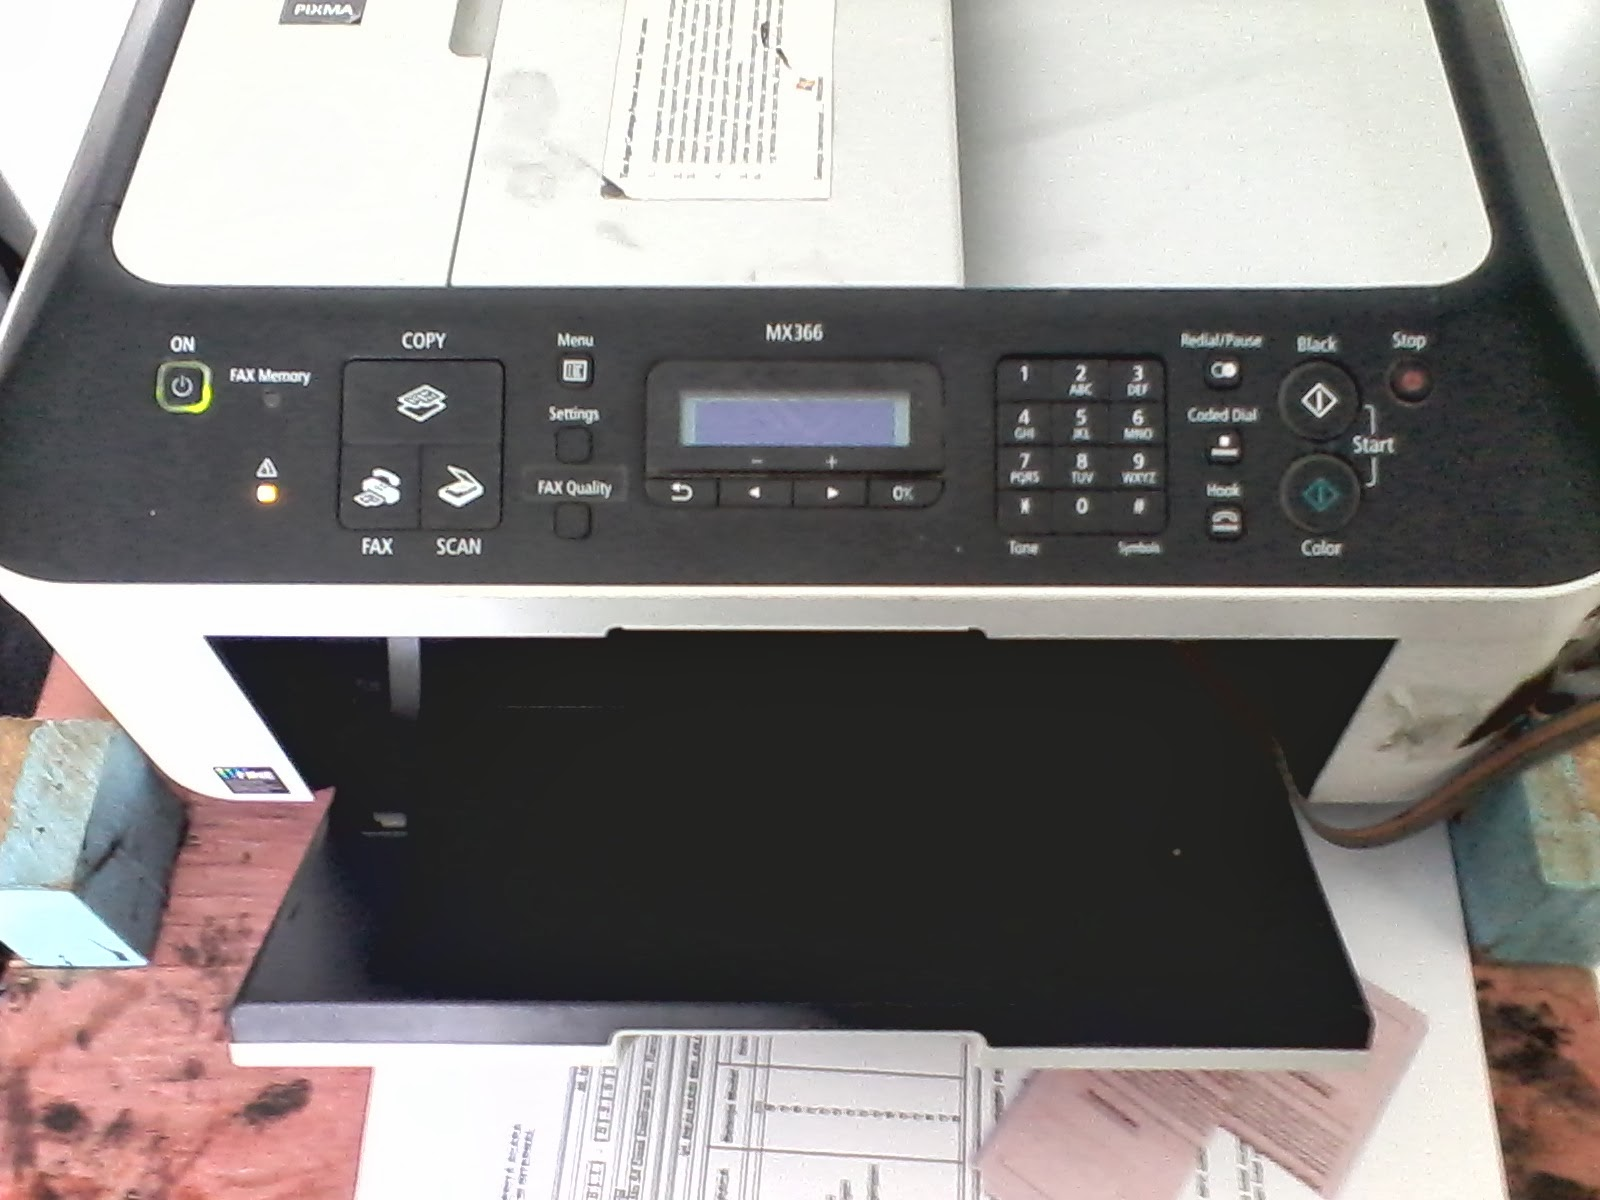 Cara Mengatasi Error 5b00 Printer Canon MX 366